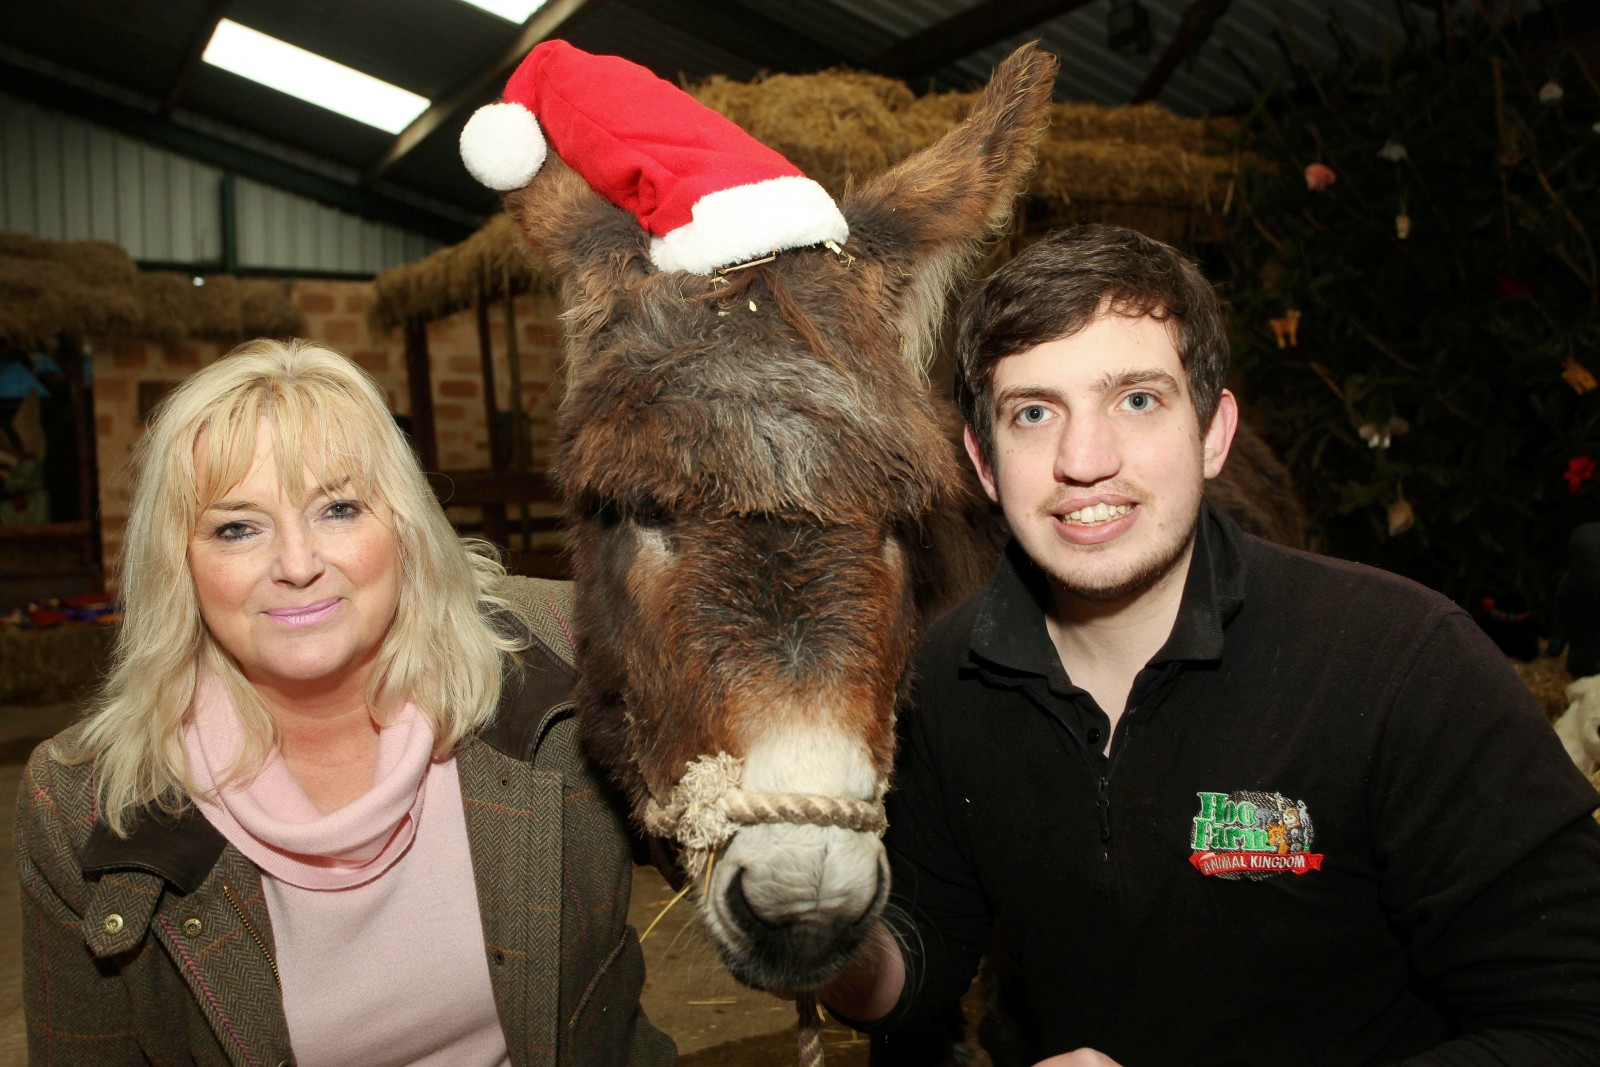 Donkey has a festive fiasco after eating Christmas decorations